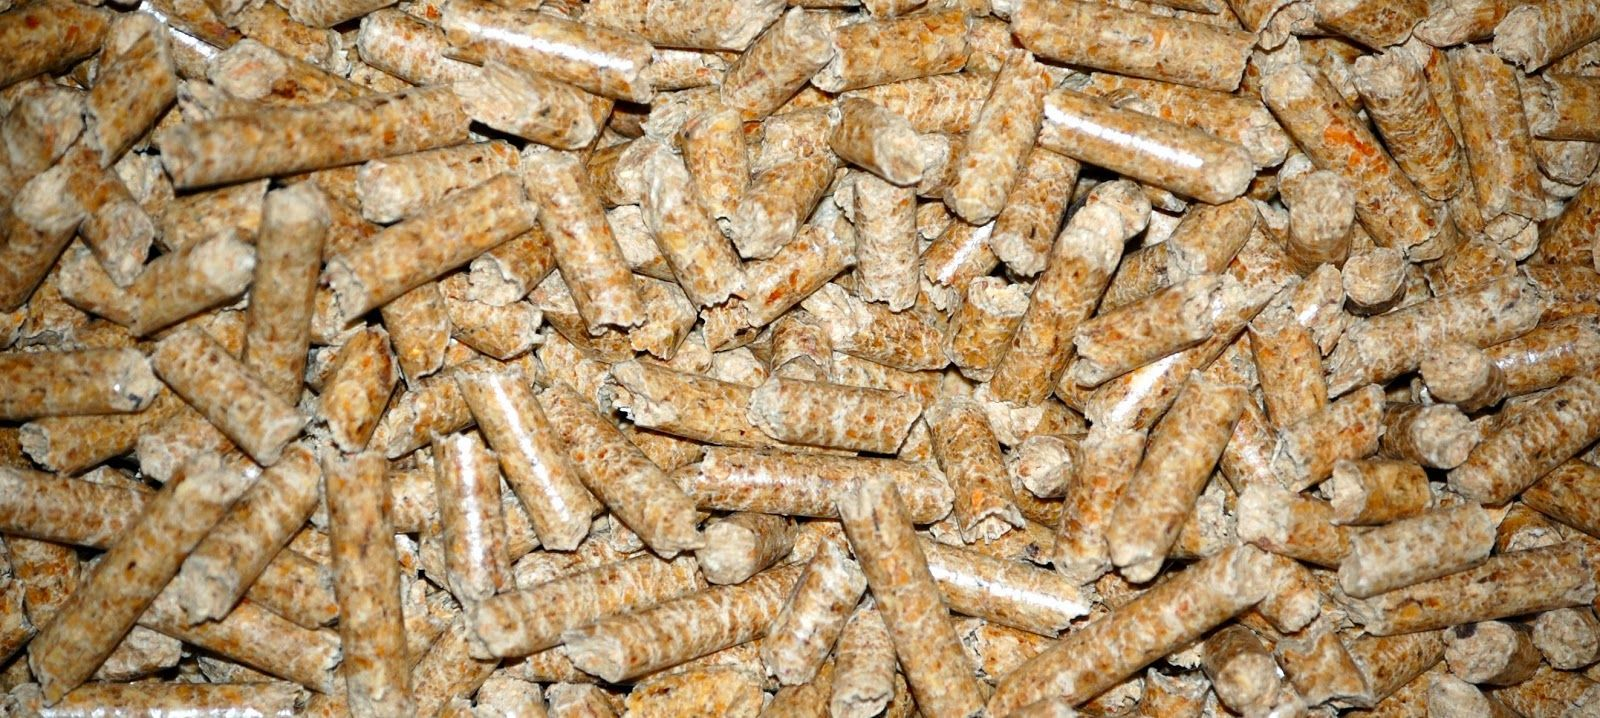 Eco Friendly Cat Litter Wood Pellets With Images Cheap Cat Litter Cat Litter Cat Training Litter Box